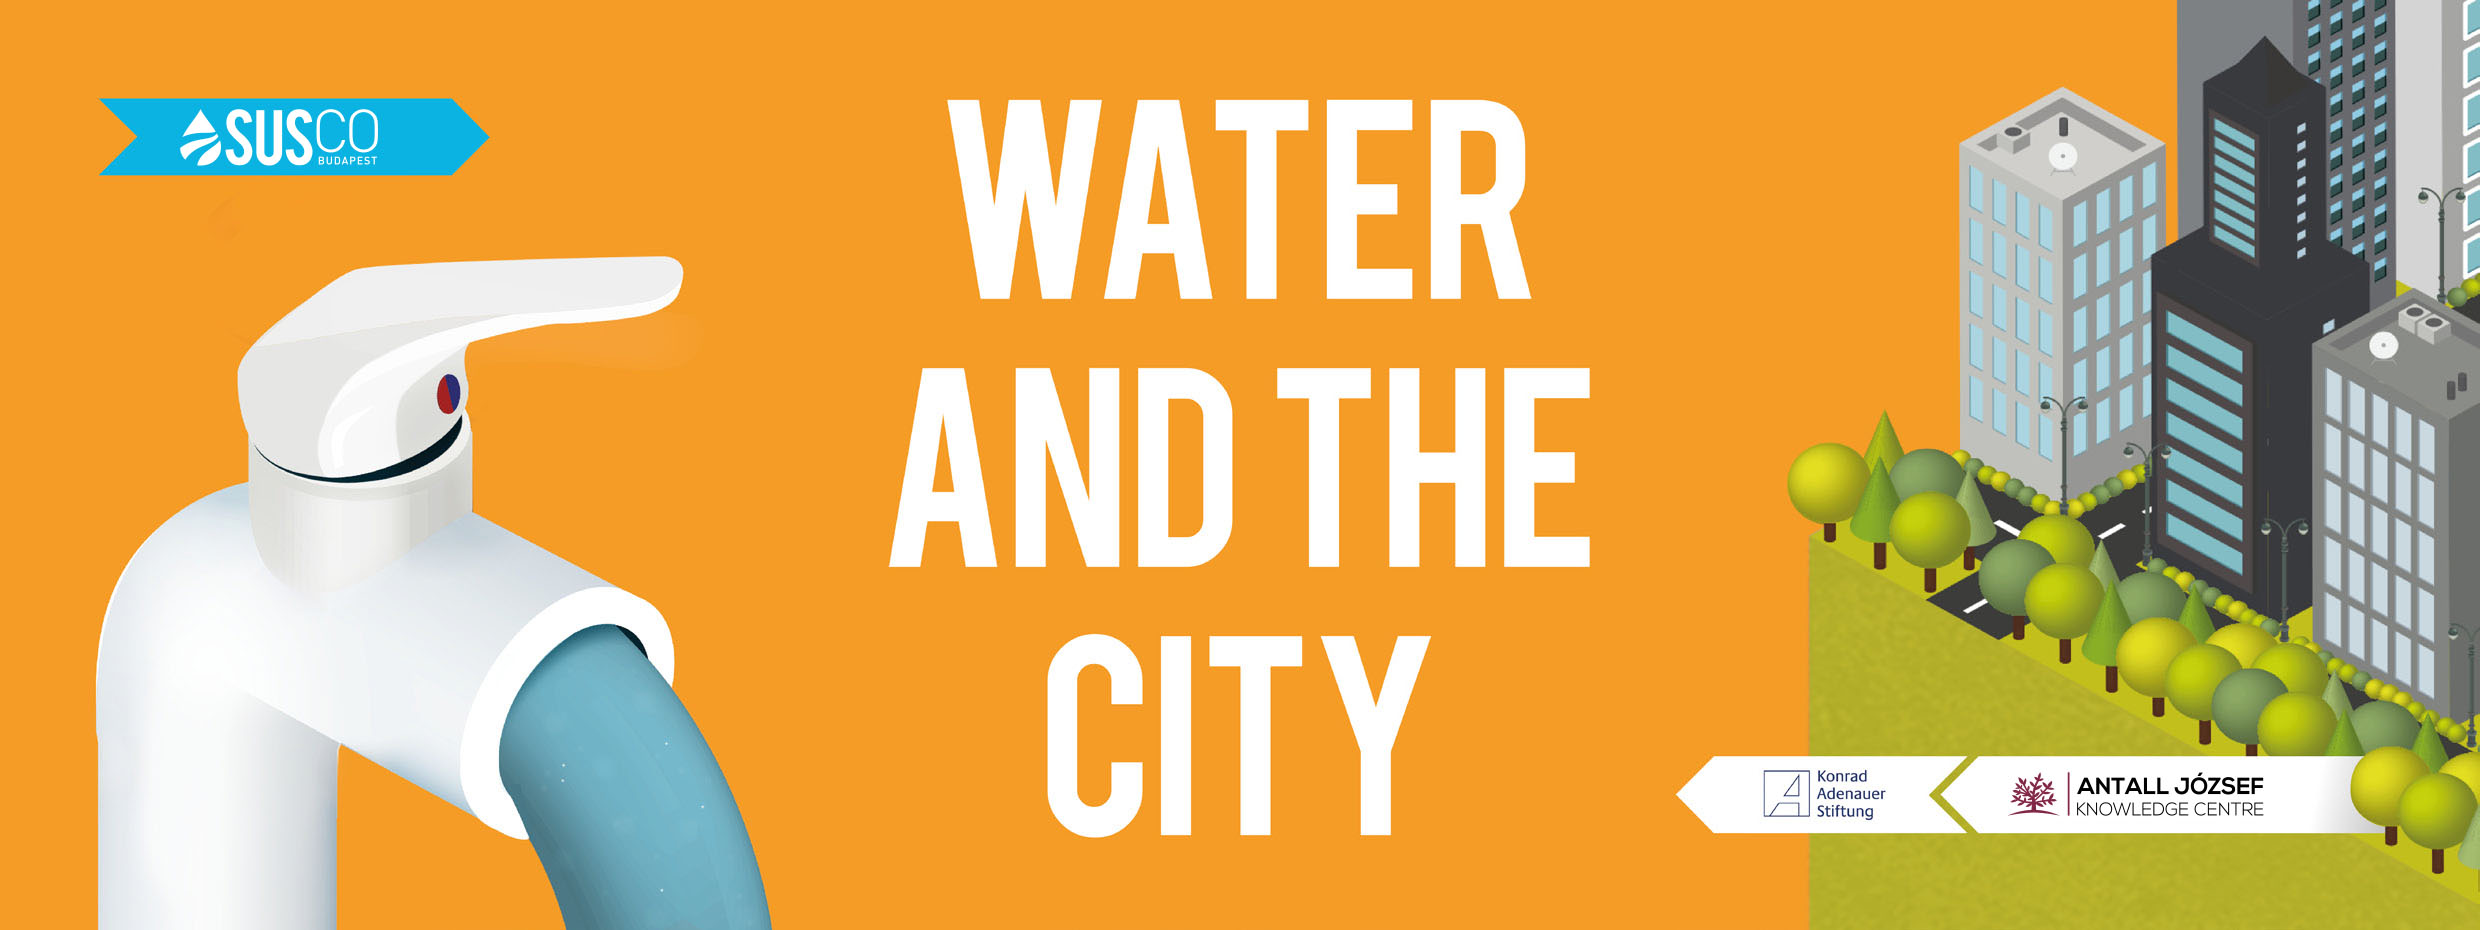 susco-budapest-2016-water-and-the-city_invitation-kep